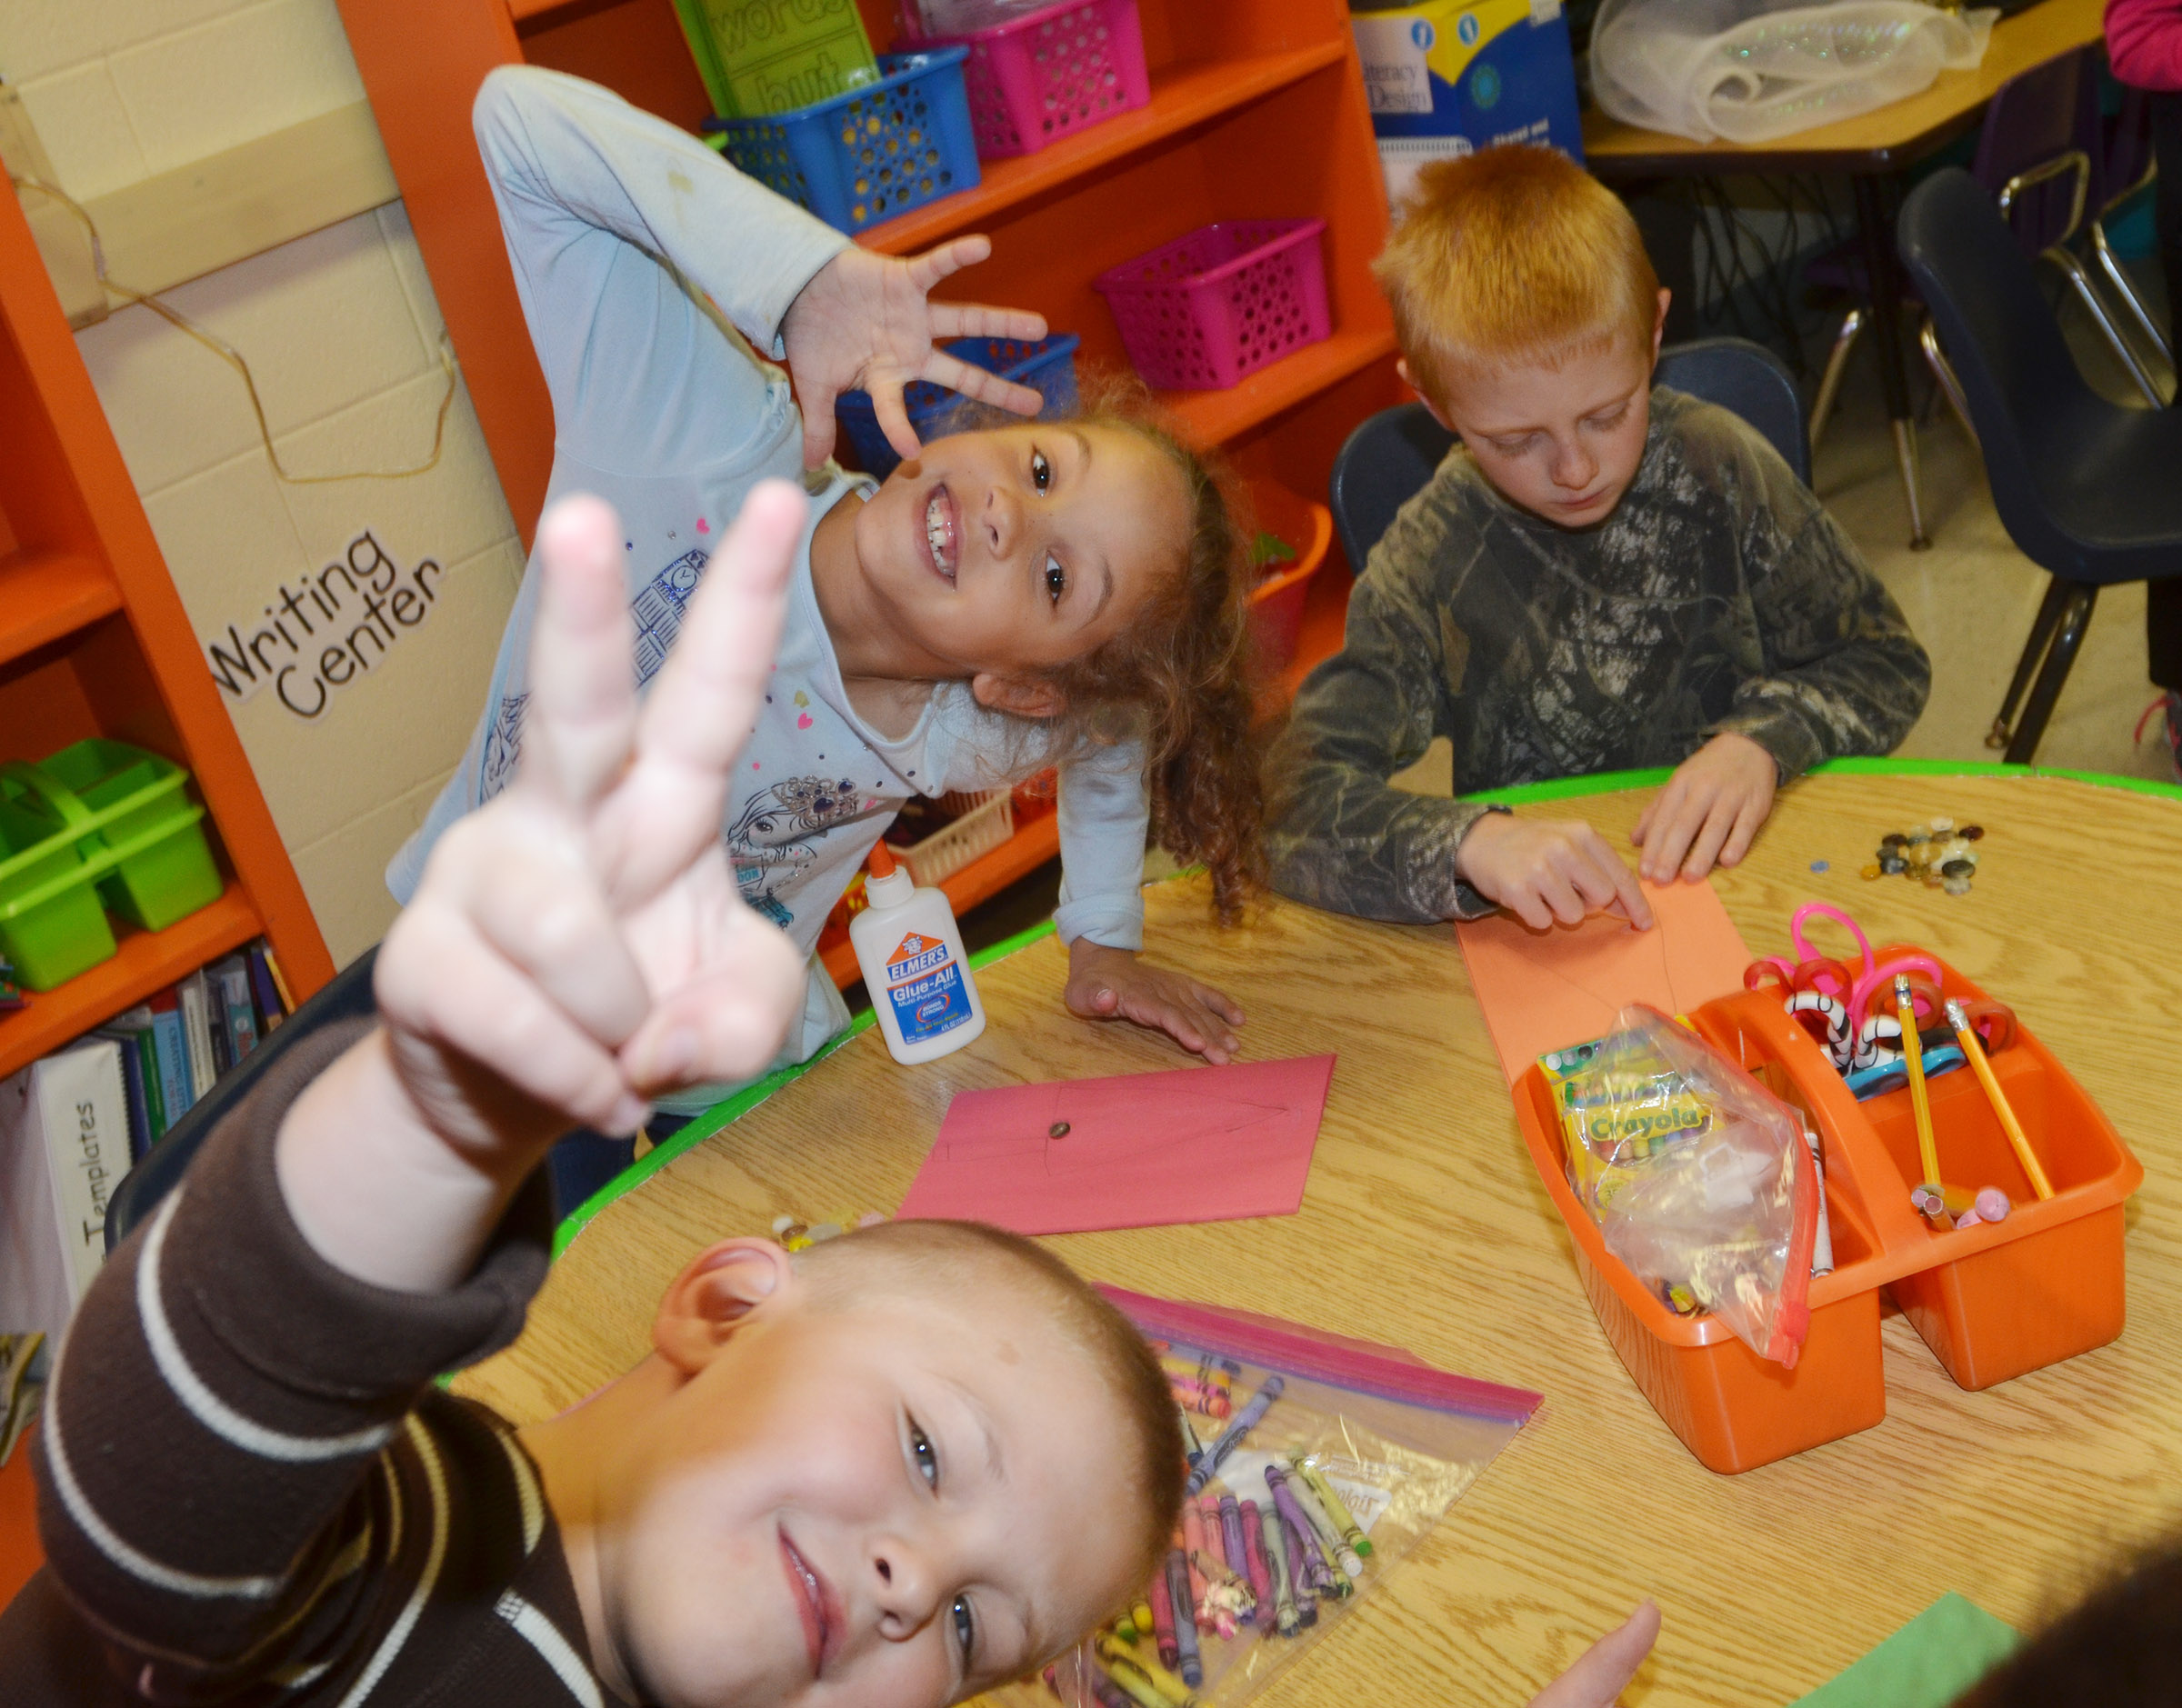 CES first-graders Brady Cox and Keiava Thompson smile for the camera as Jacob Wethington works on his tree.